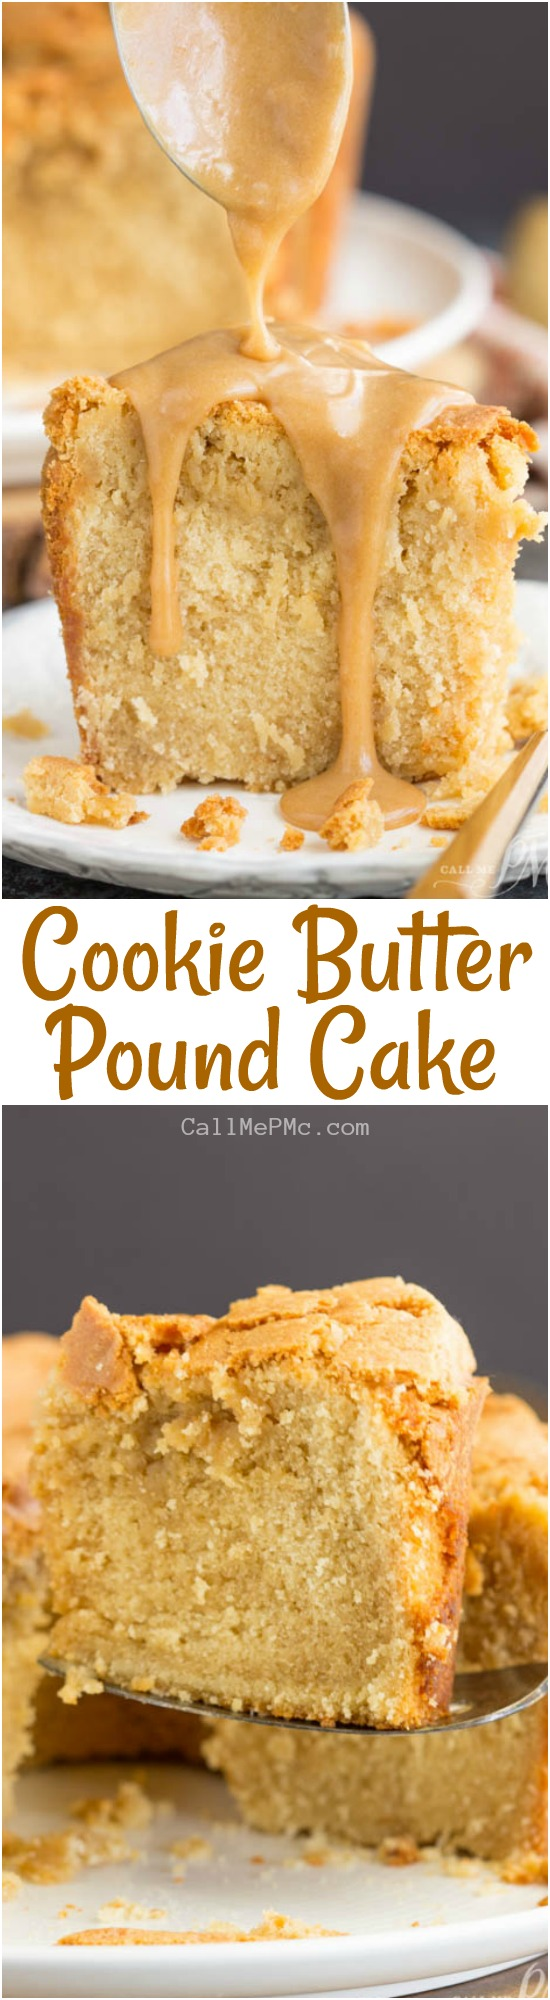 Melt-in-your-mouth good, Cookie Butter Pound Cake is luscious and rich. The cookie butter gives it almost a brown sugar or caramel flavor